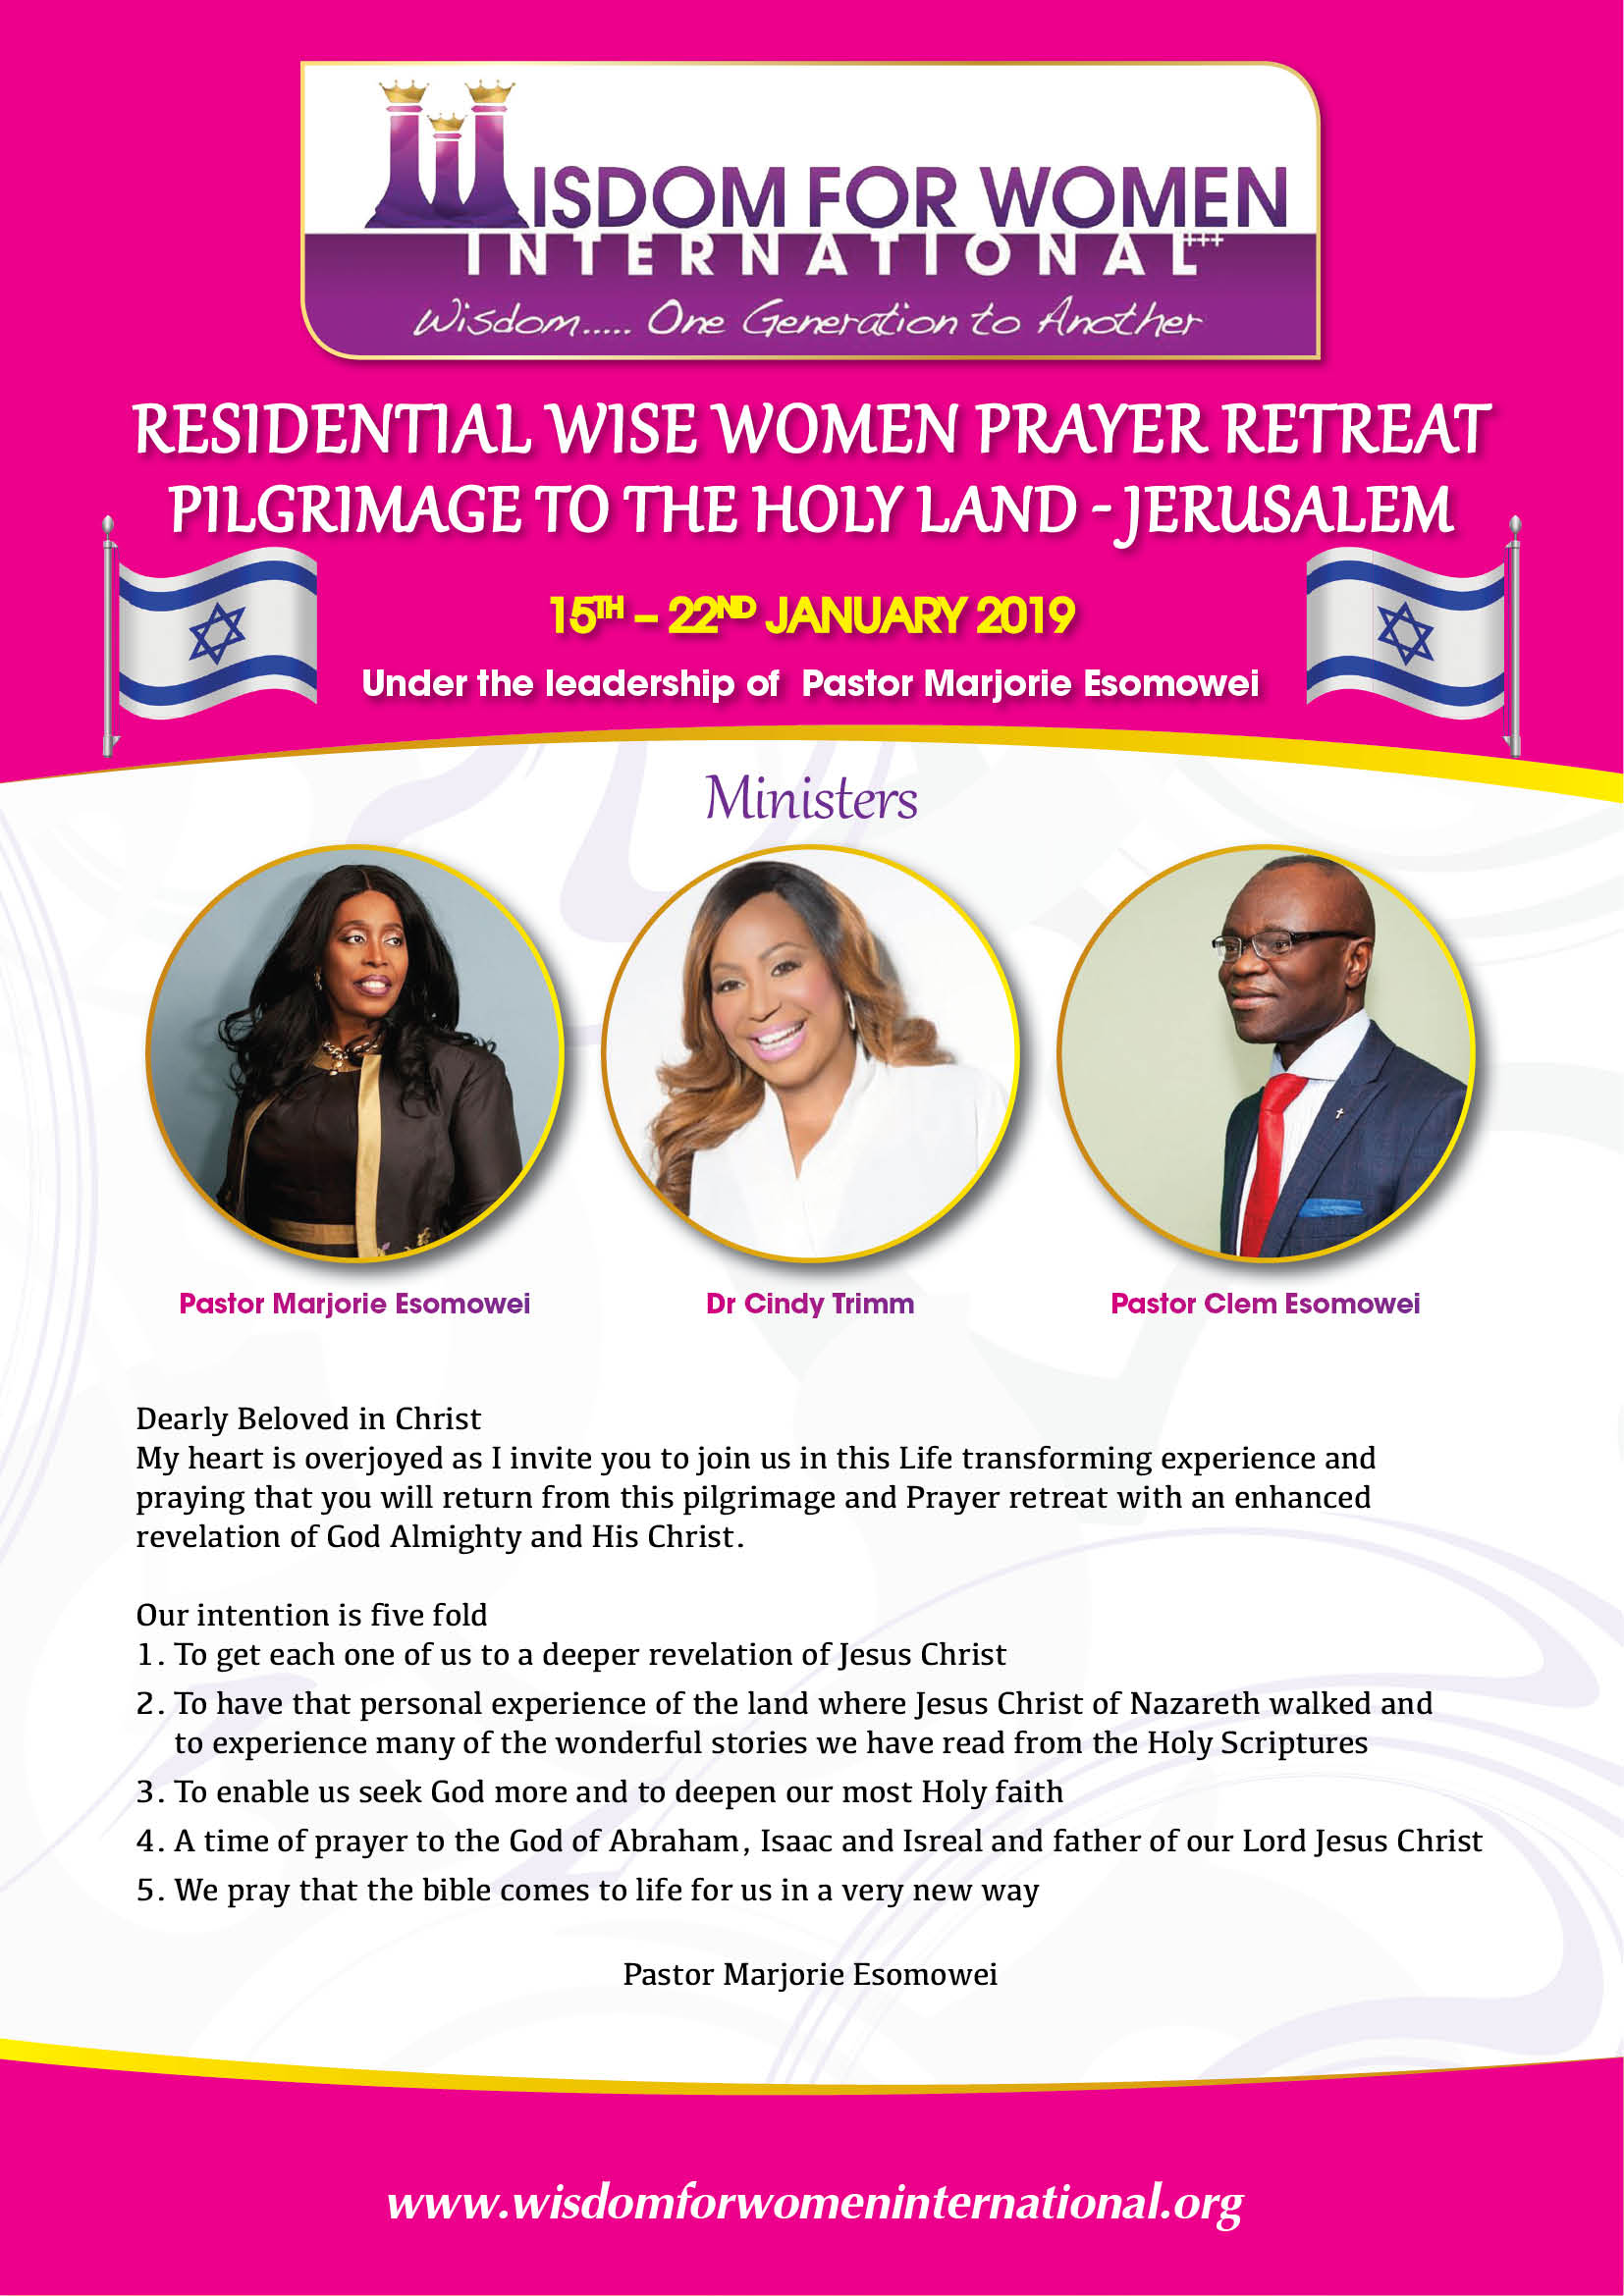 Residential Wise Women Prayer Retreat Pilgrimage to the Holy Land - Jerusalem